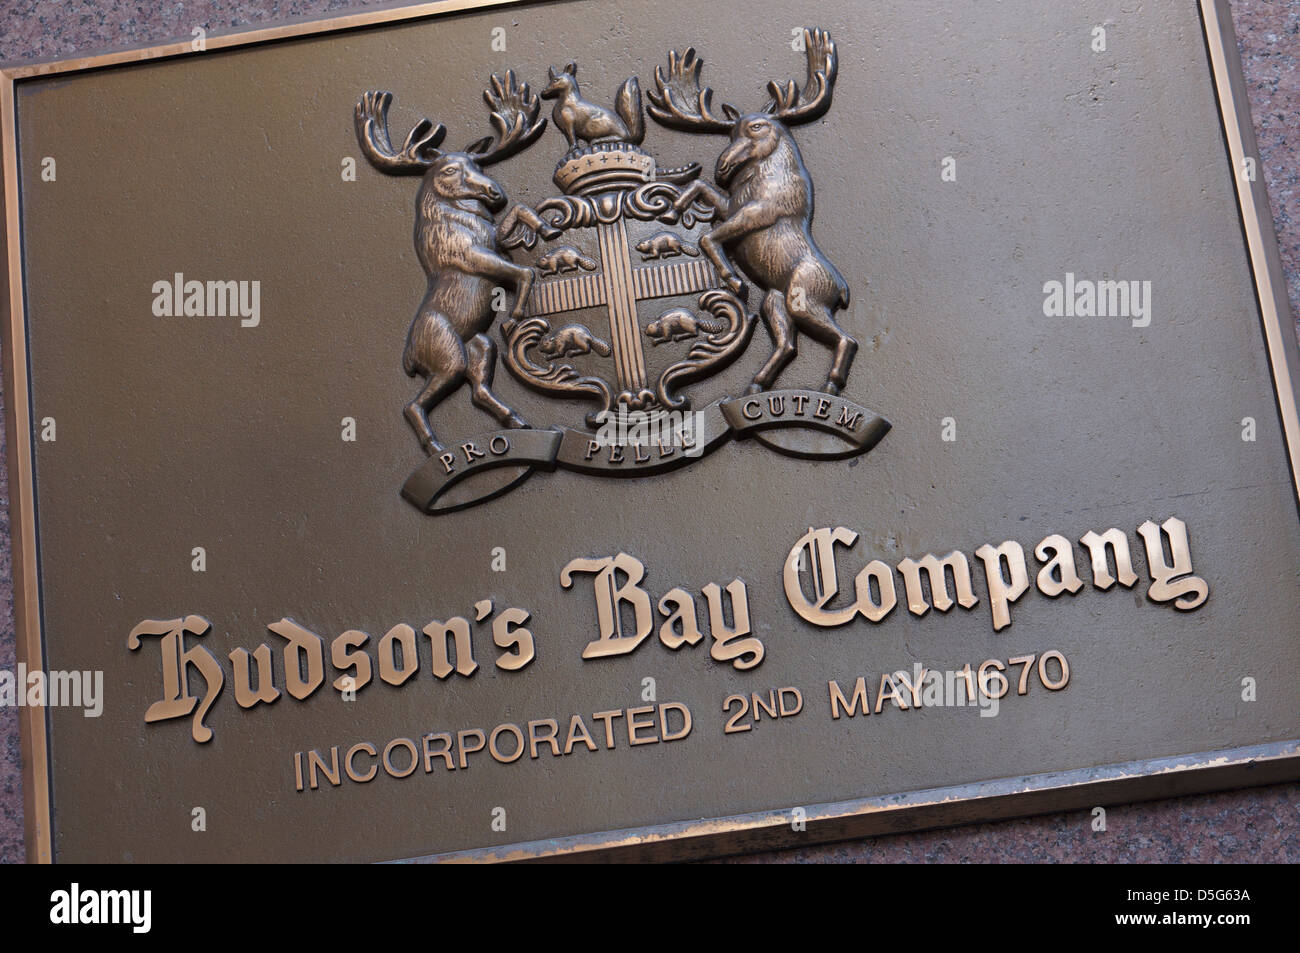 Hudson's Bay Company Plaque outside Store - Stock Image